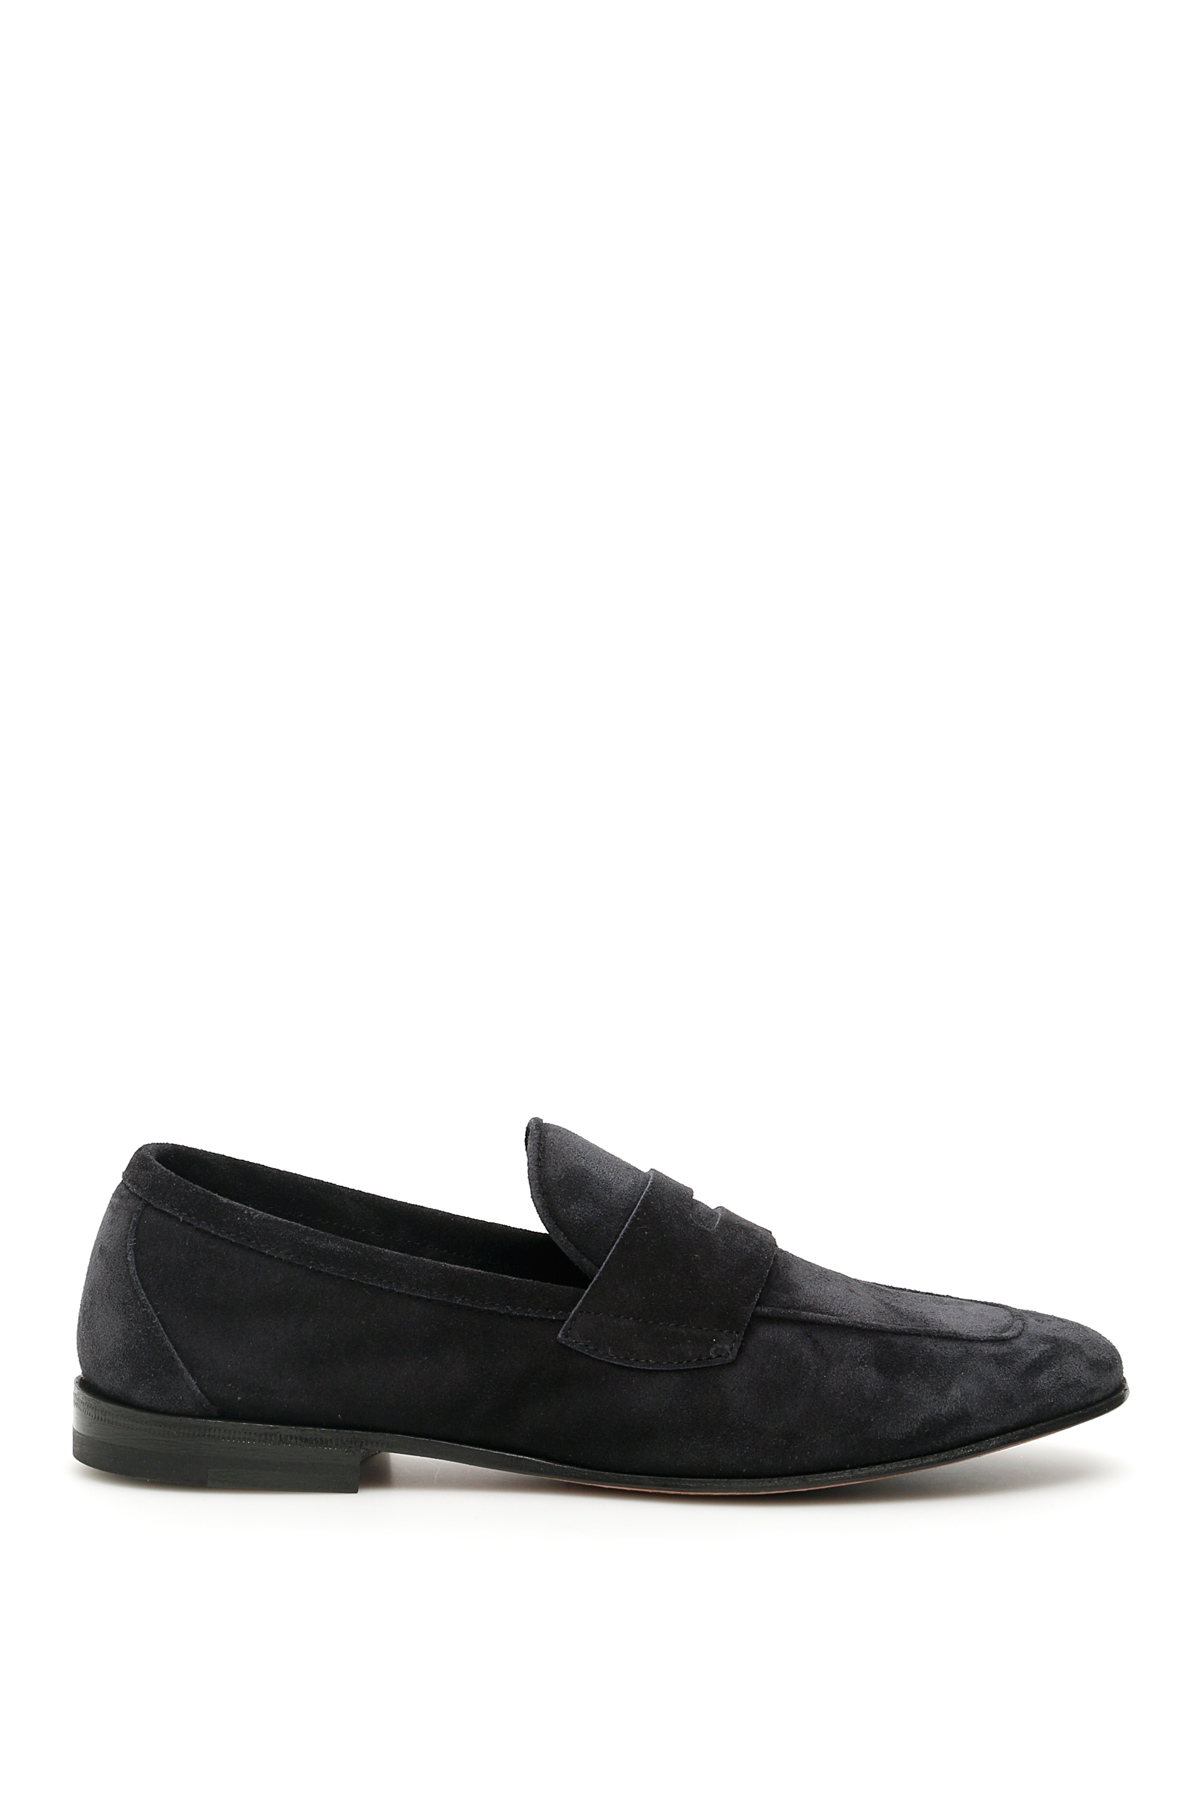 HENDERSON SUEDE LOAFERS 40 Blue Leather